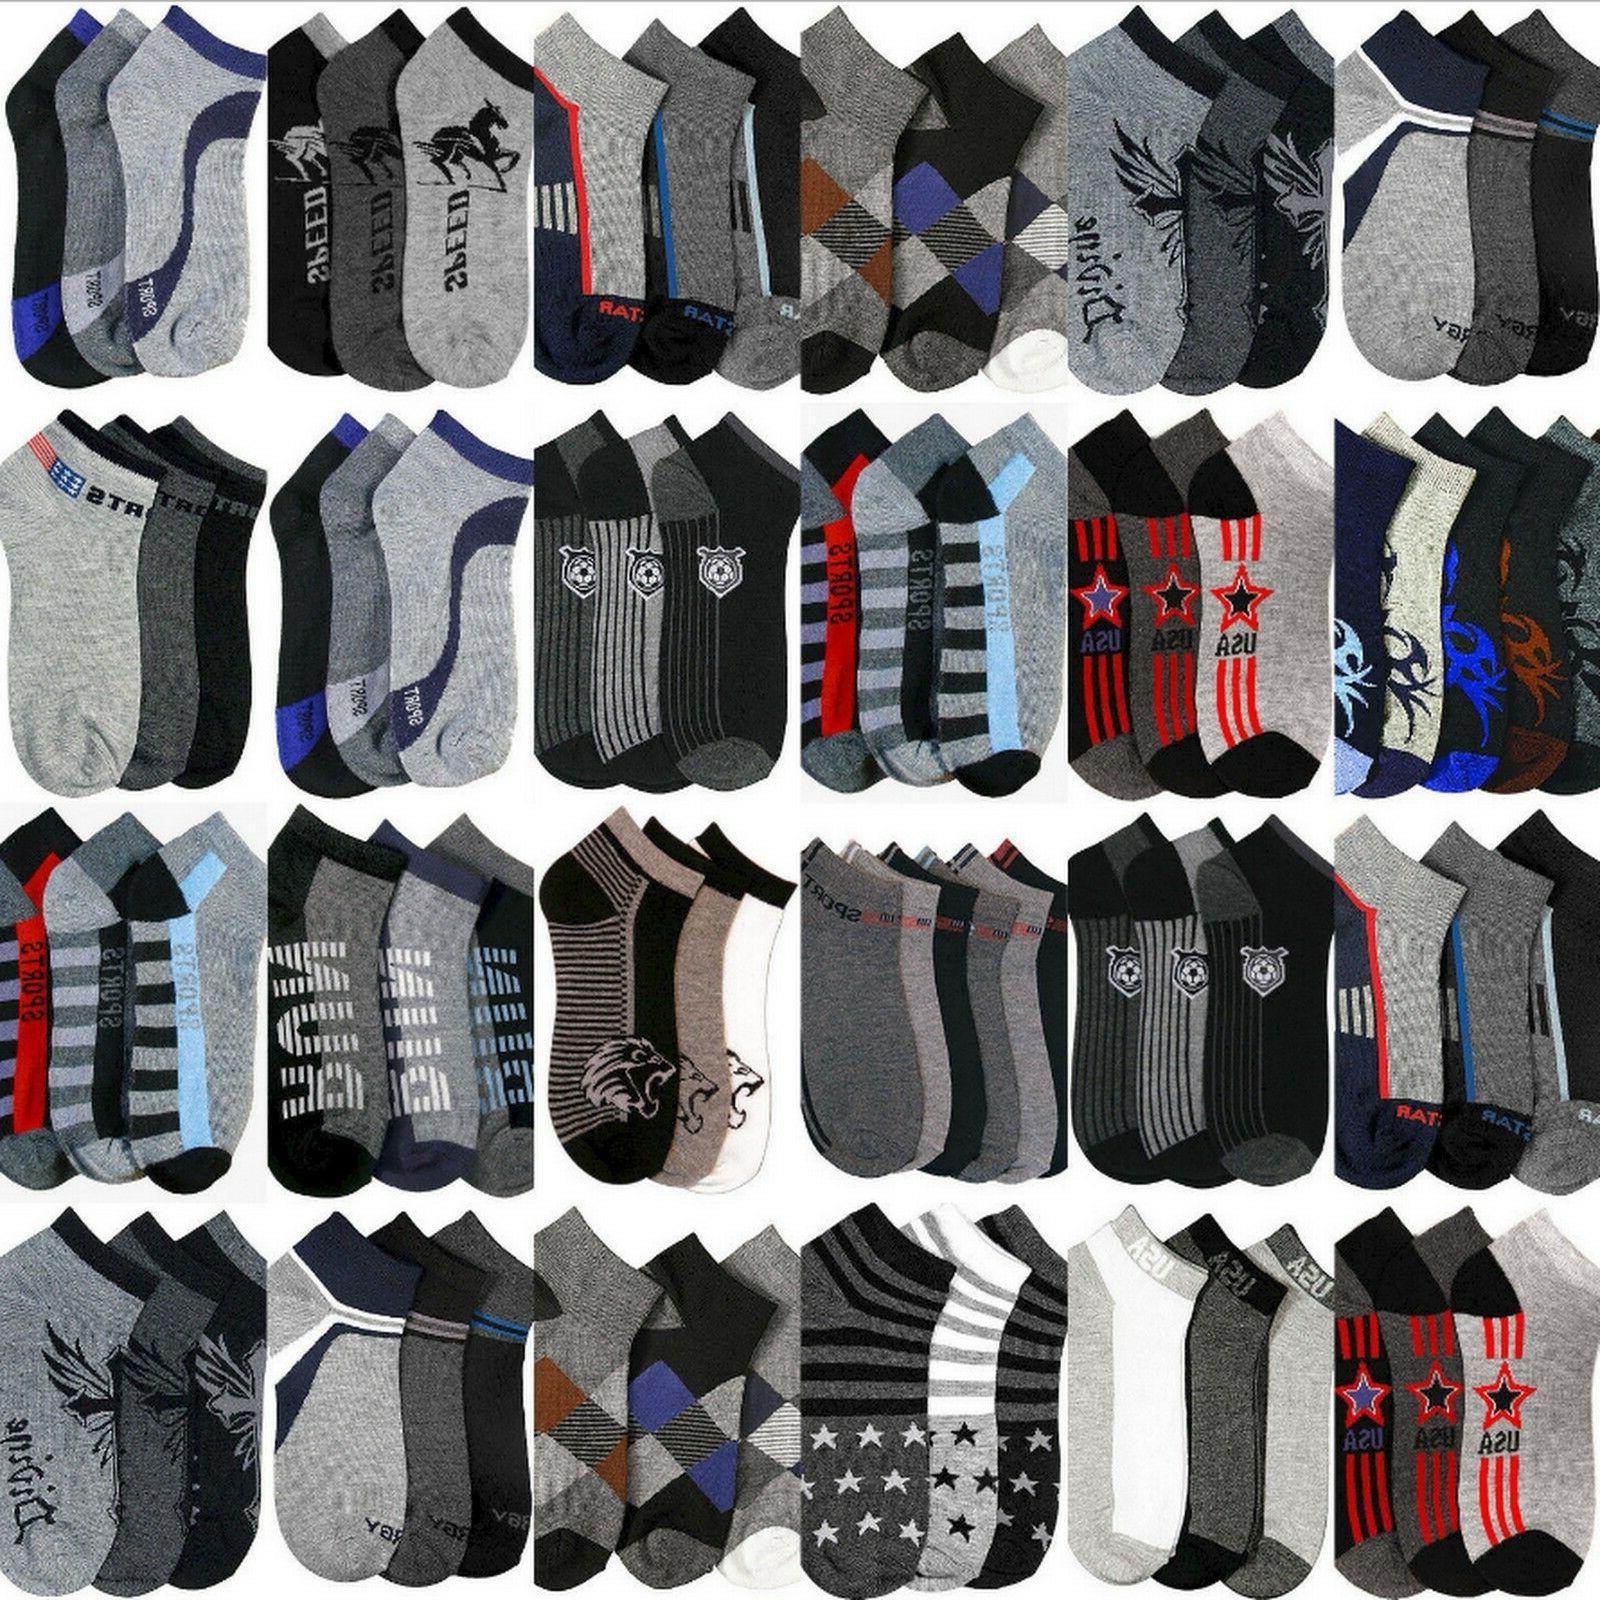 Boys Socks Size 6-8 Year Old Bulk Wholesale Assorted Low Ank